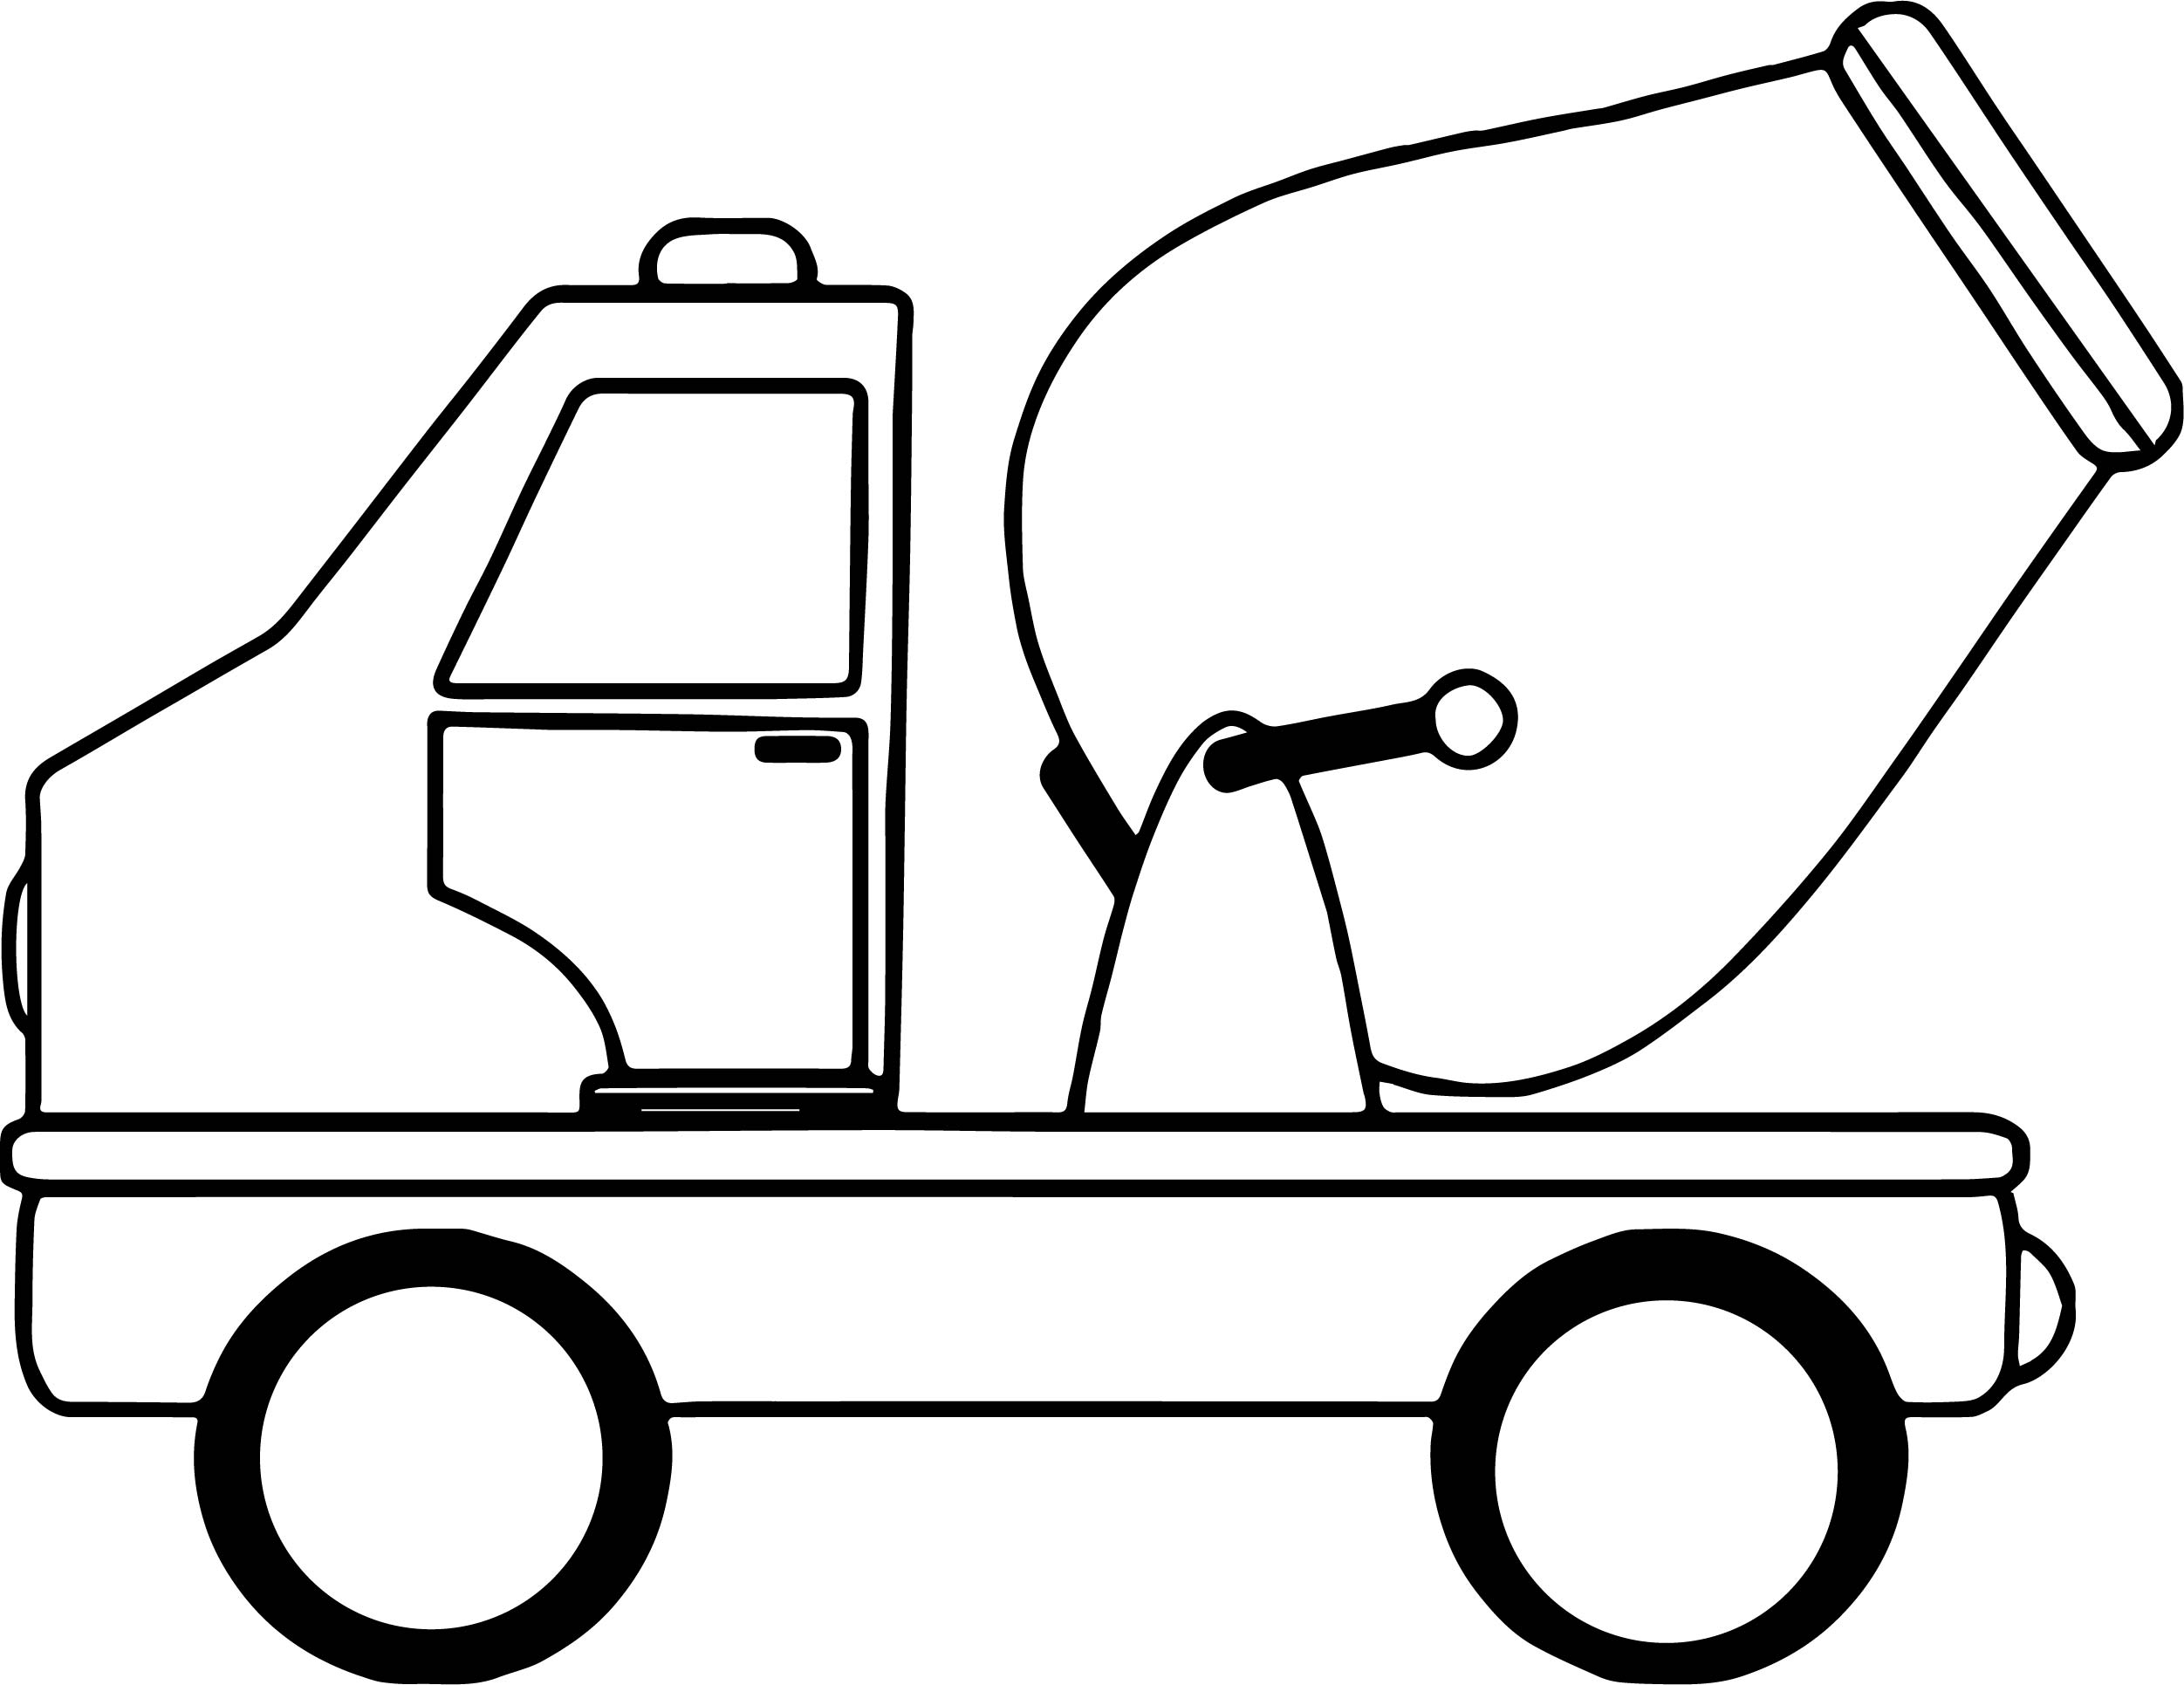 cement toy car coloring page wecoloringpage